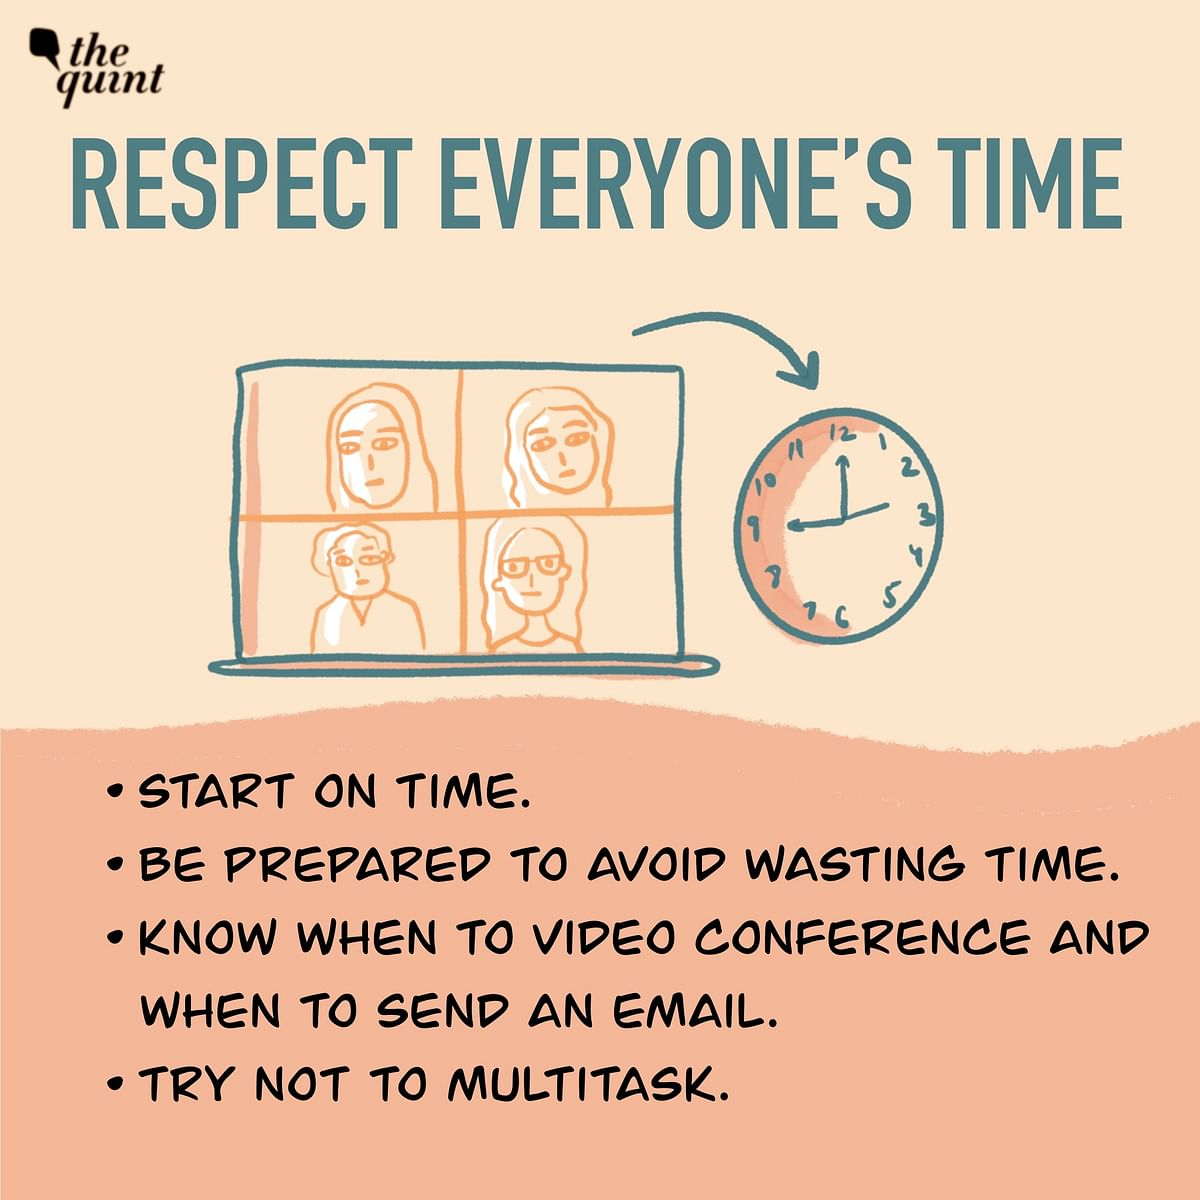 Respect everyone's time.